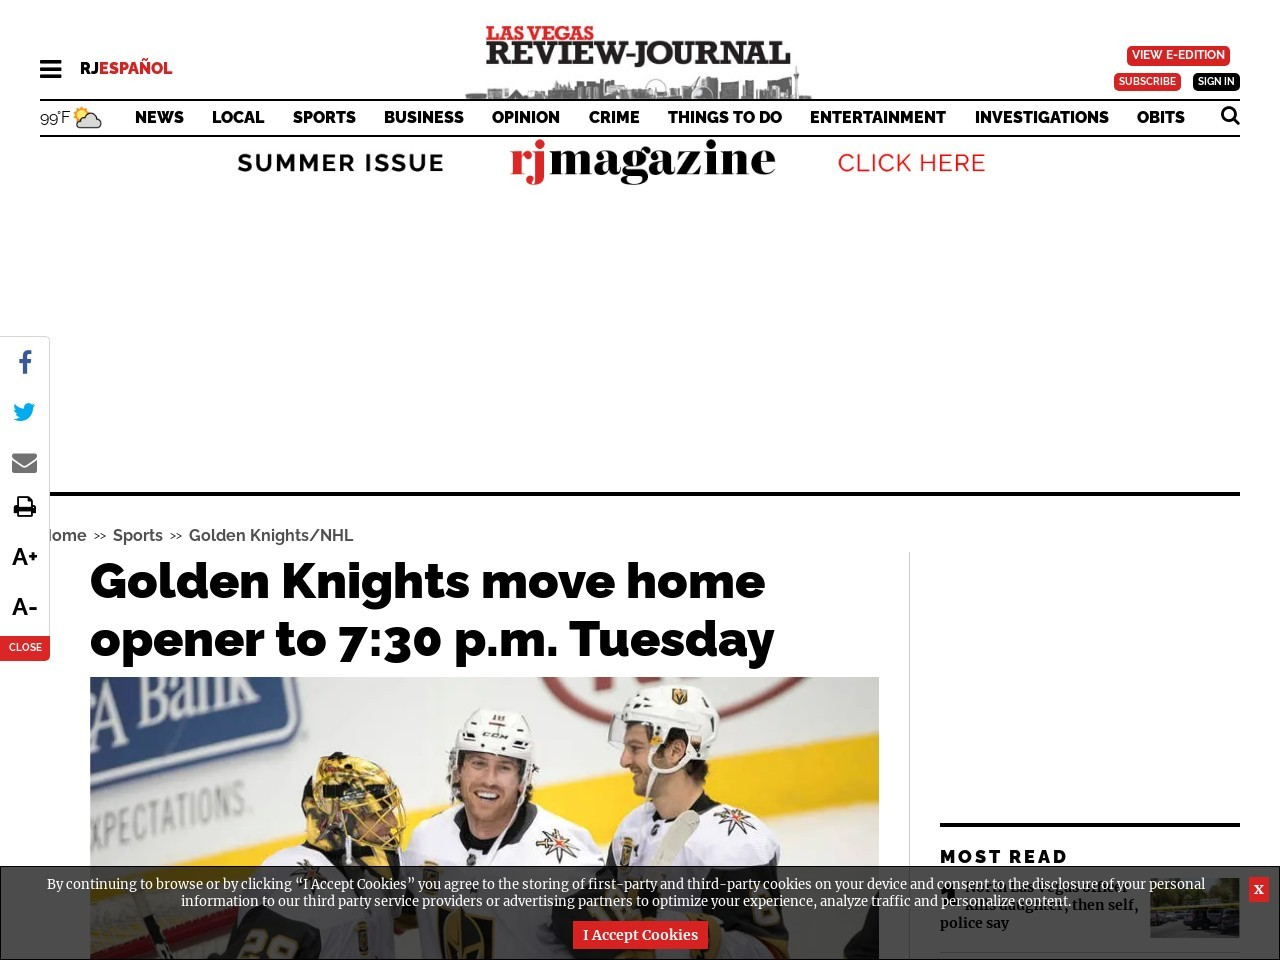 Golden Knights move home opener to 7:30 p.m. Tuesday